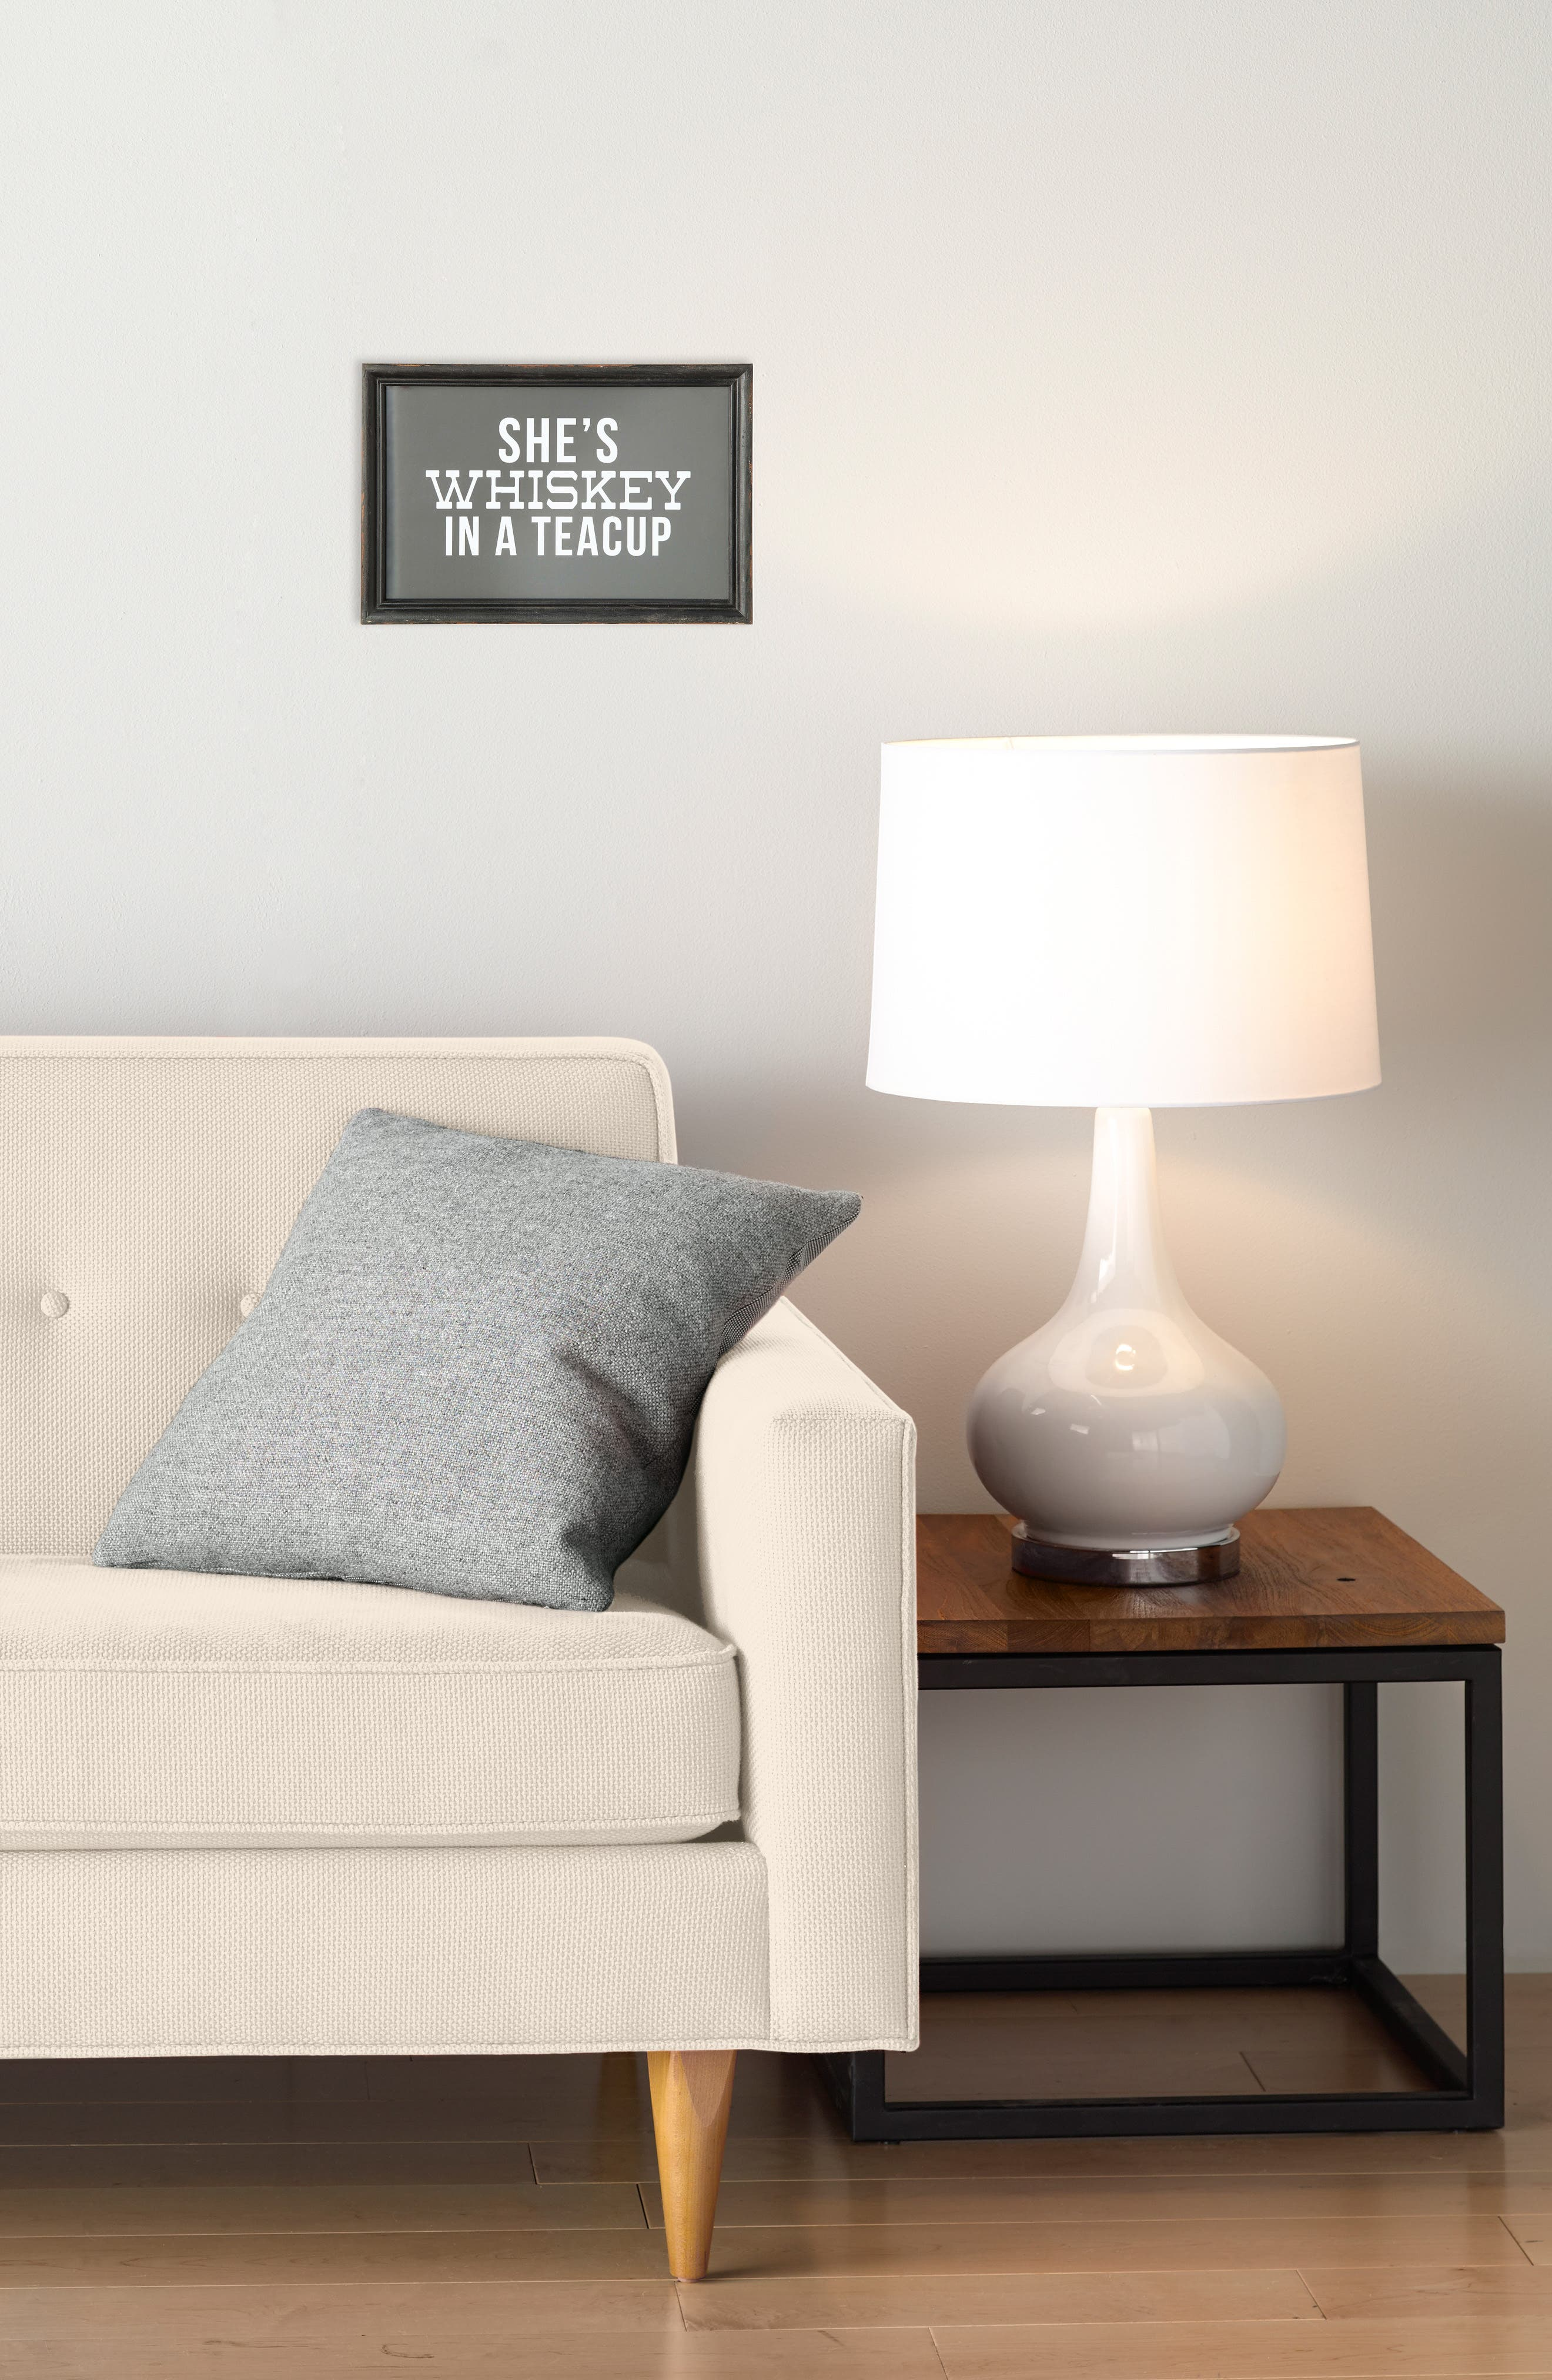 CREATIVE CO-OP,                             Whiskey in a Tea Cup Wall Art,                             Alternate thumbnail 2, color,                             001